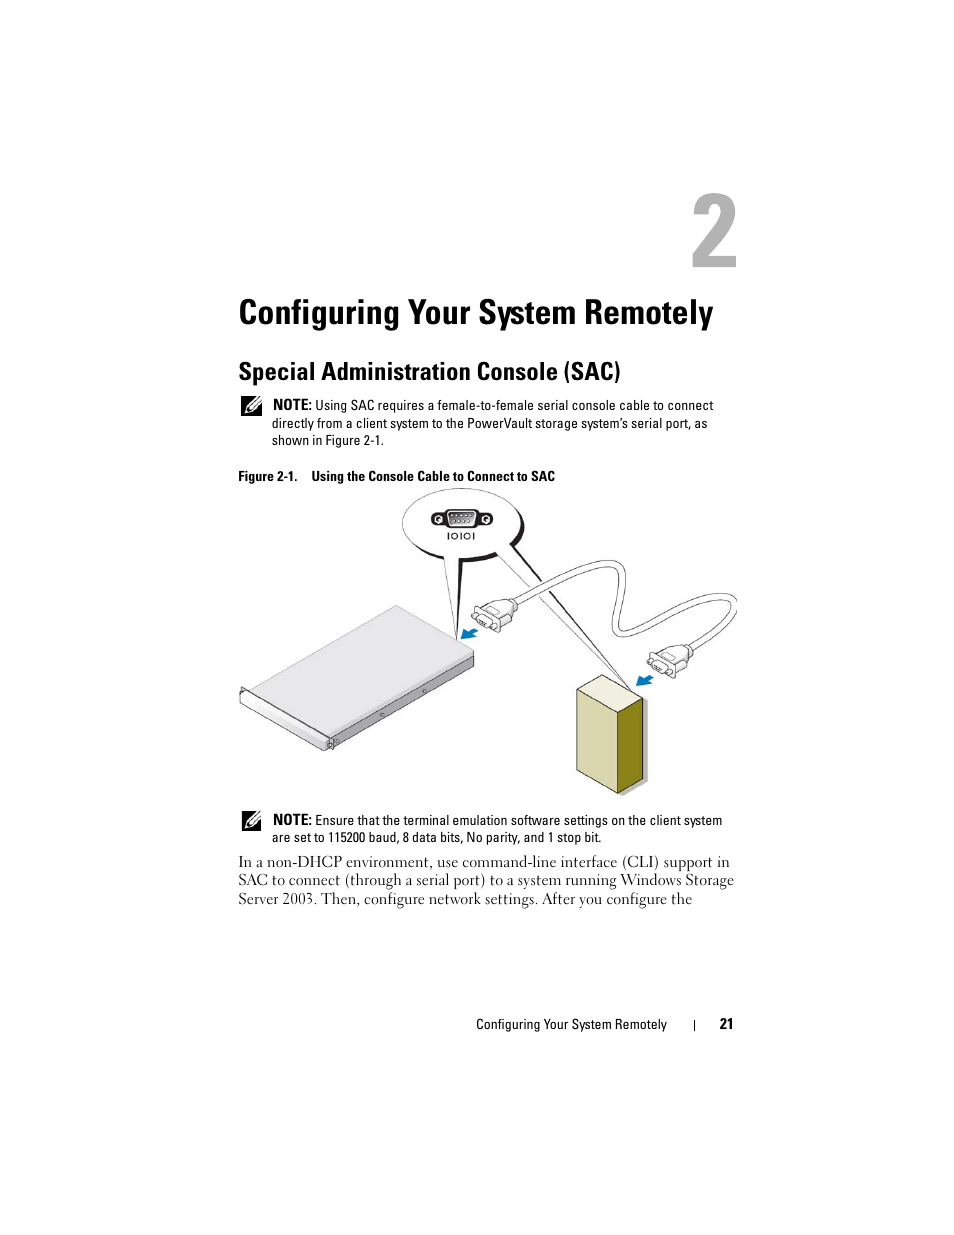 Configuring Your System Remotely Special Administration Console Rollover Cable Diagram Sac Dell Powervault Dp600 User Manual Page 21 52